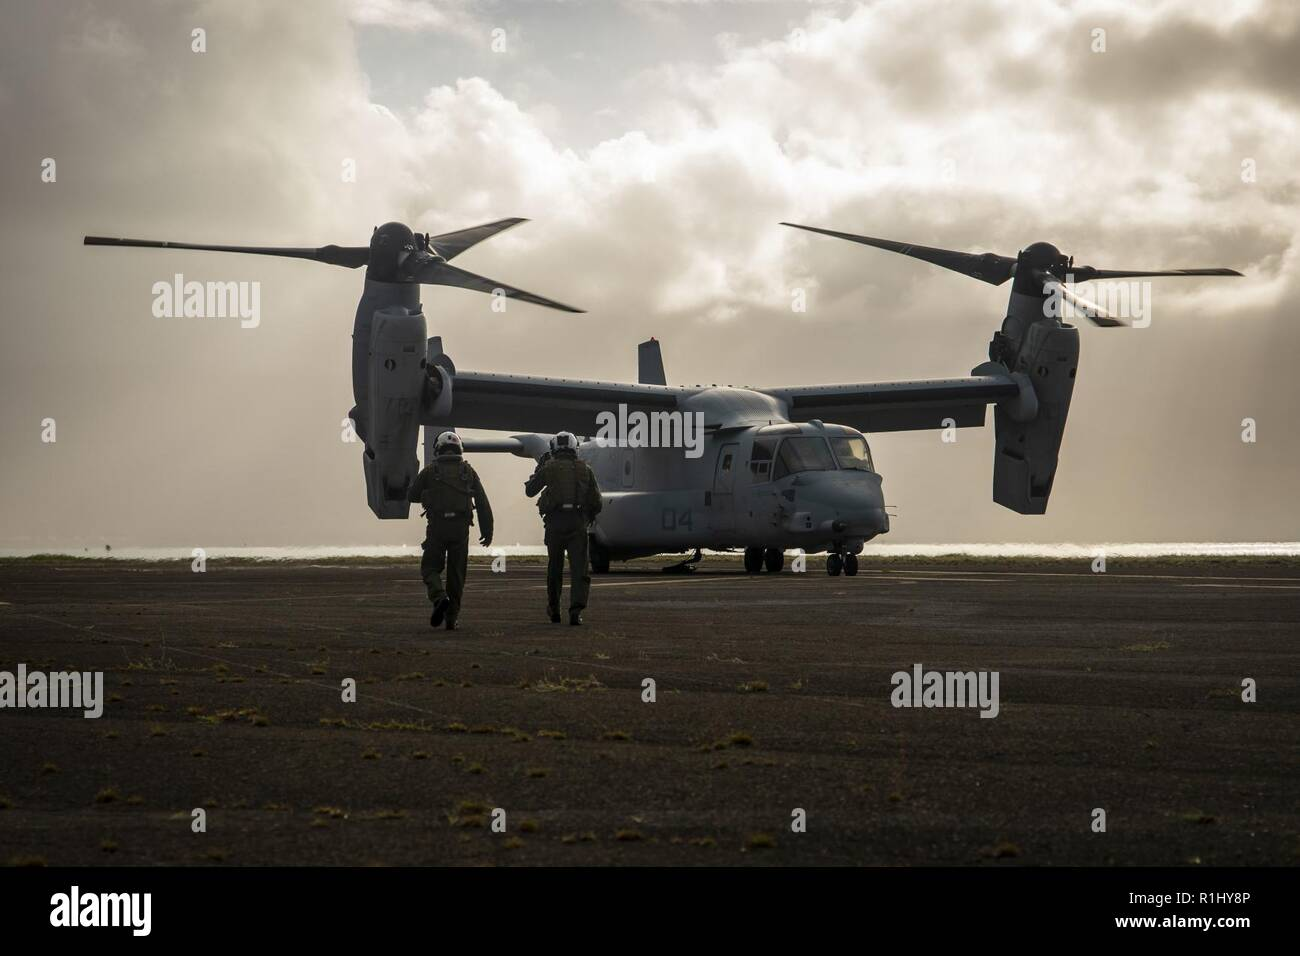 U.S. Marines with Marine Medium Tiltrotor Squadron 363 (VMM-363) walk toward their MV-22B Osprey helicopter in preparation for a helicopter support team (HST) exercise at Landing Zone Westfield, Marine Corps Base Hawaii, Sept. 20, 2018.The HST exercise provides training to landing support specialists with CLB-3 and VMM-363 pilots more proficient in the insertion and extraction of objects in restrictive terrain. Stock Photo